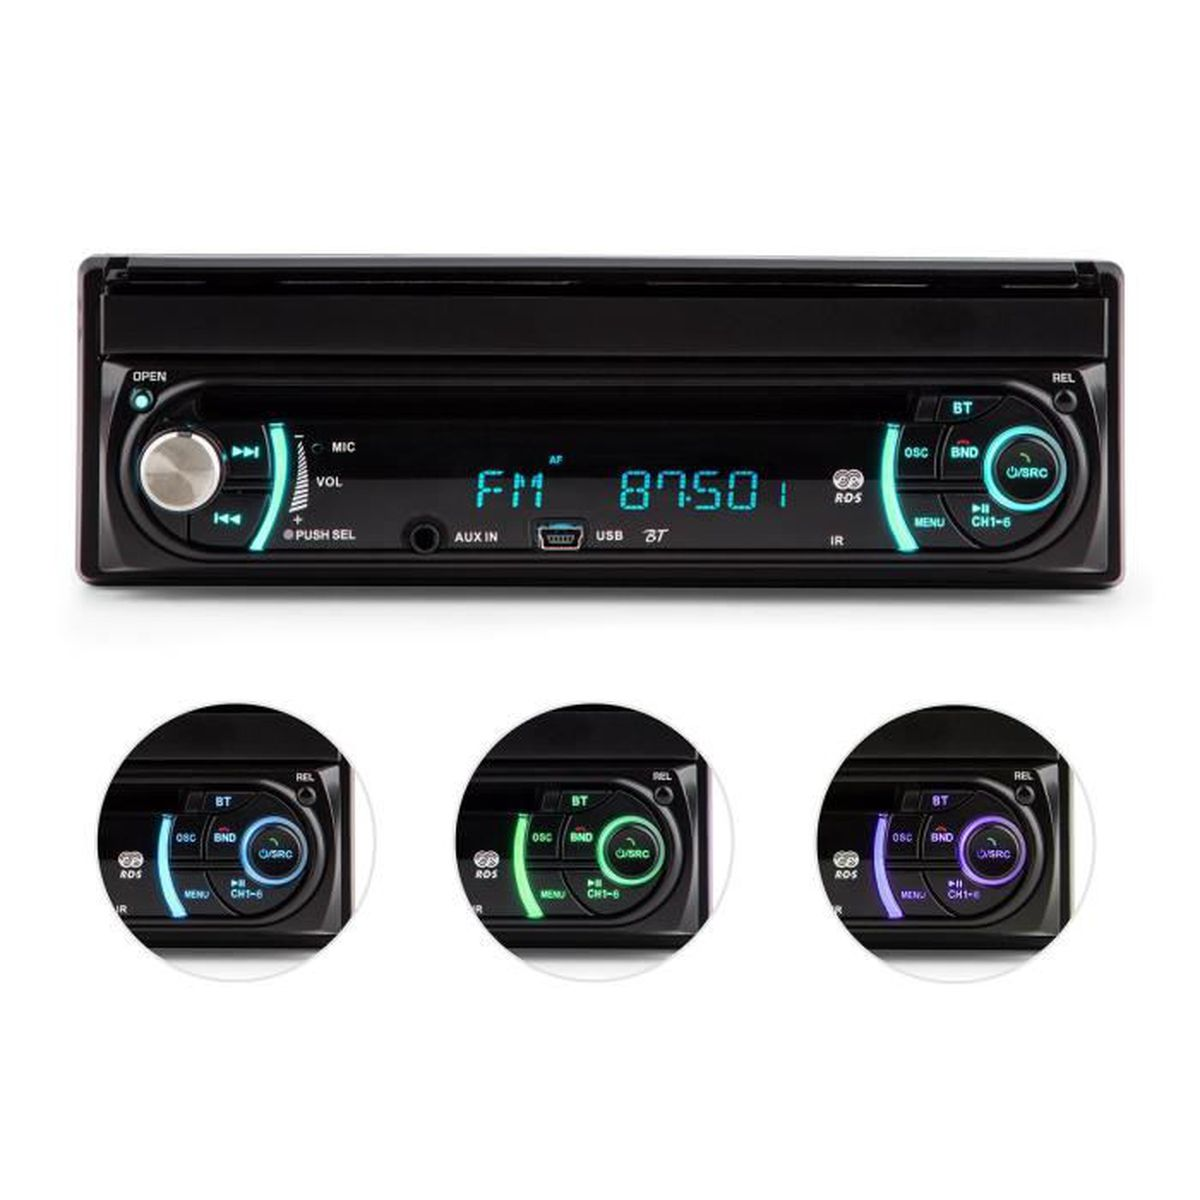 auna mvd 330 autoradio multimedia ecran retractable 18cm bluetooth lecteur cd port usb et. Black Bedroom Furniture Sets. Home Design Ideas